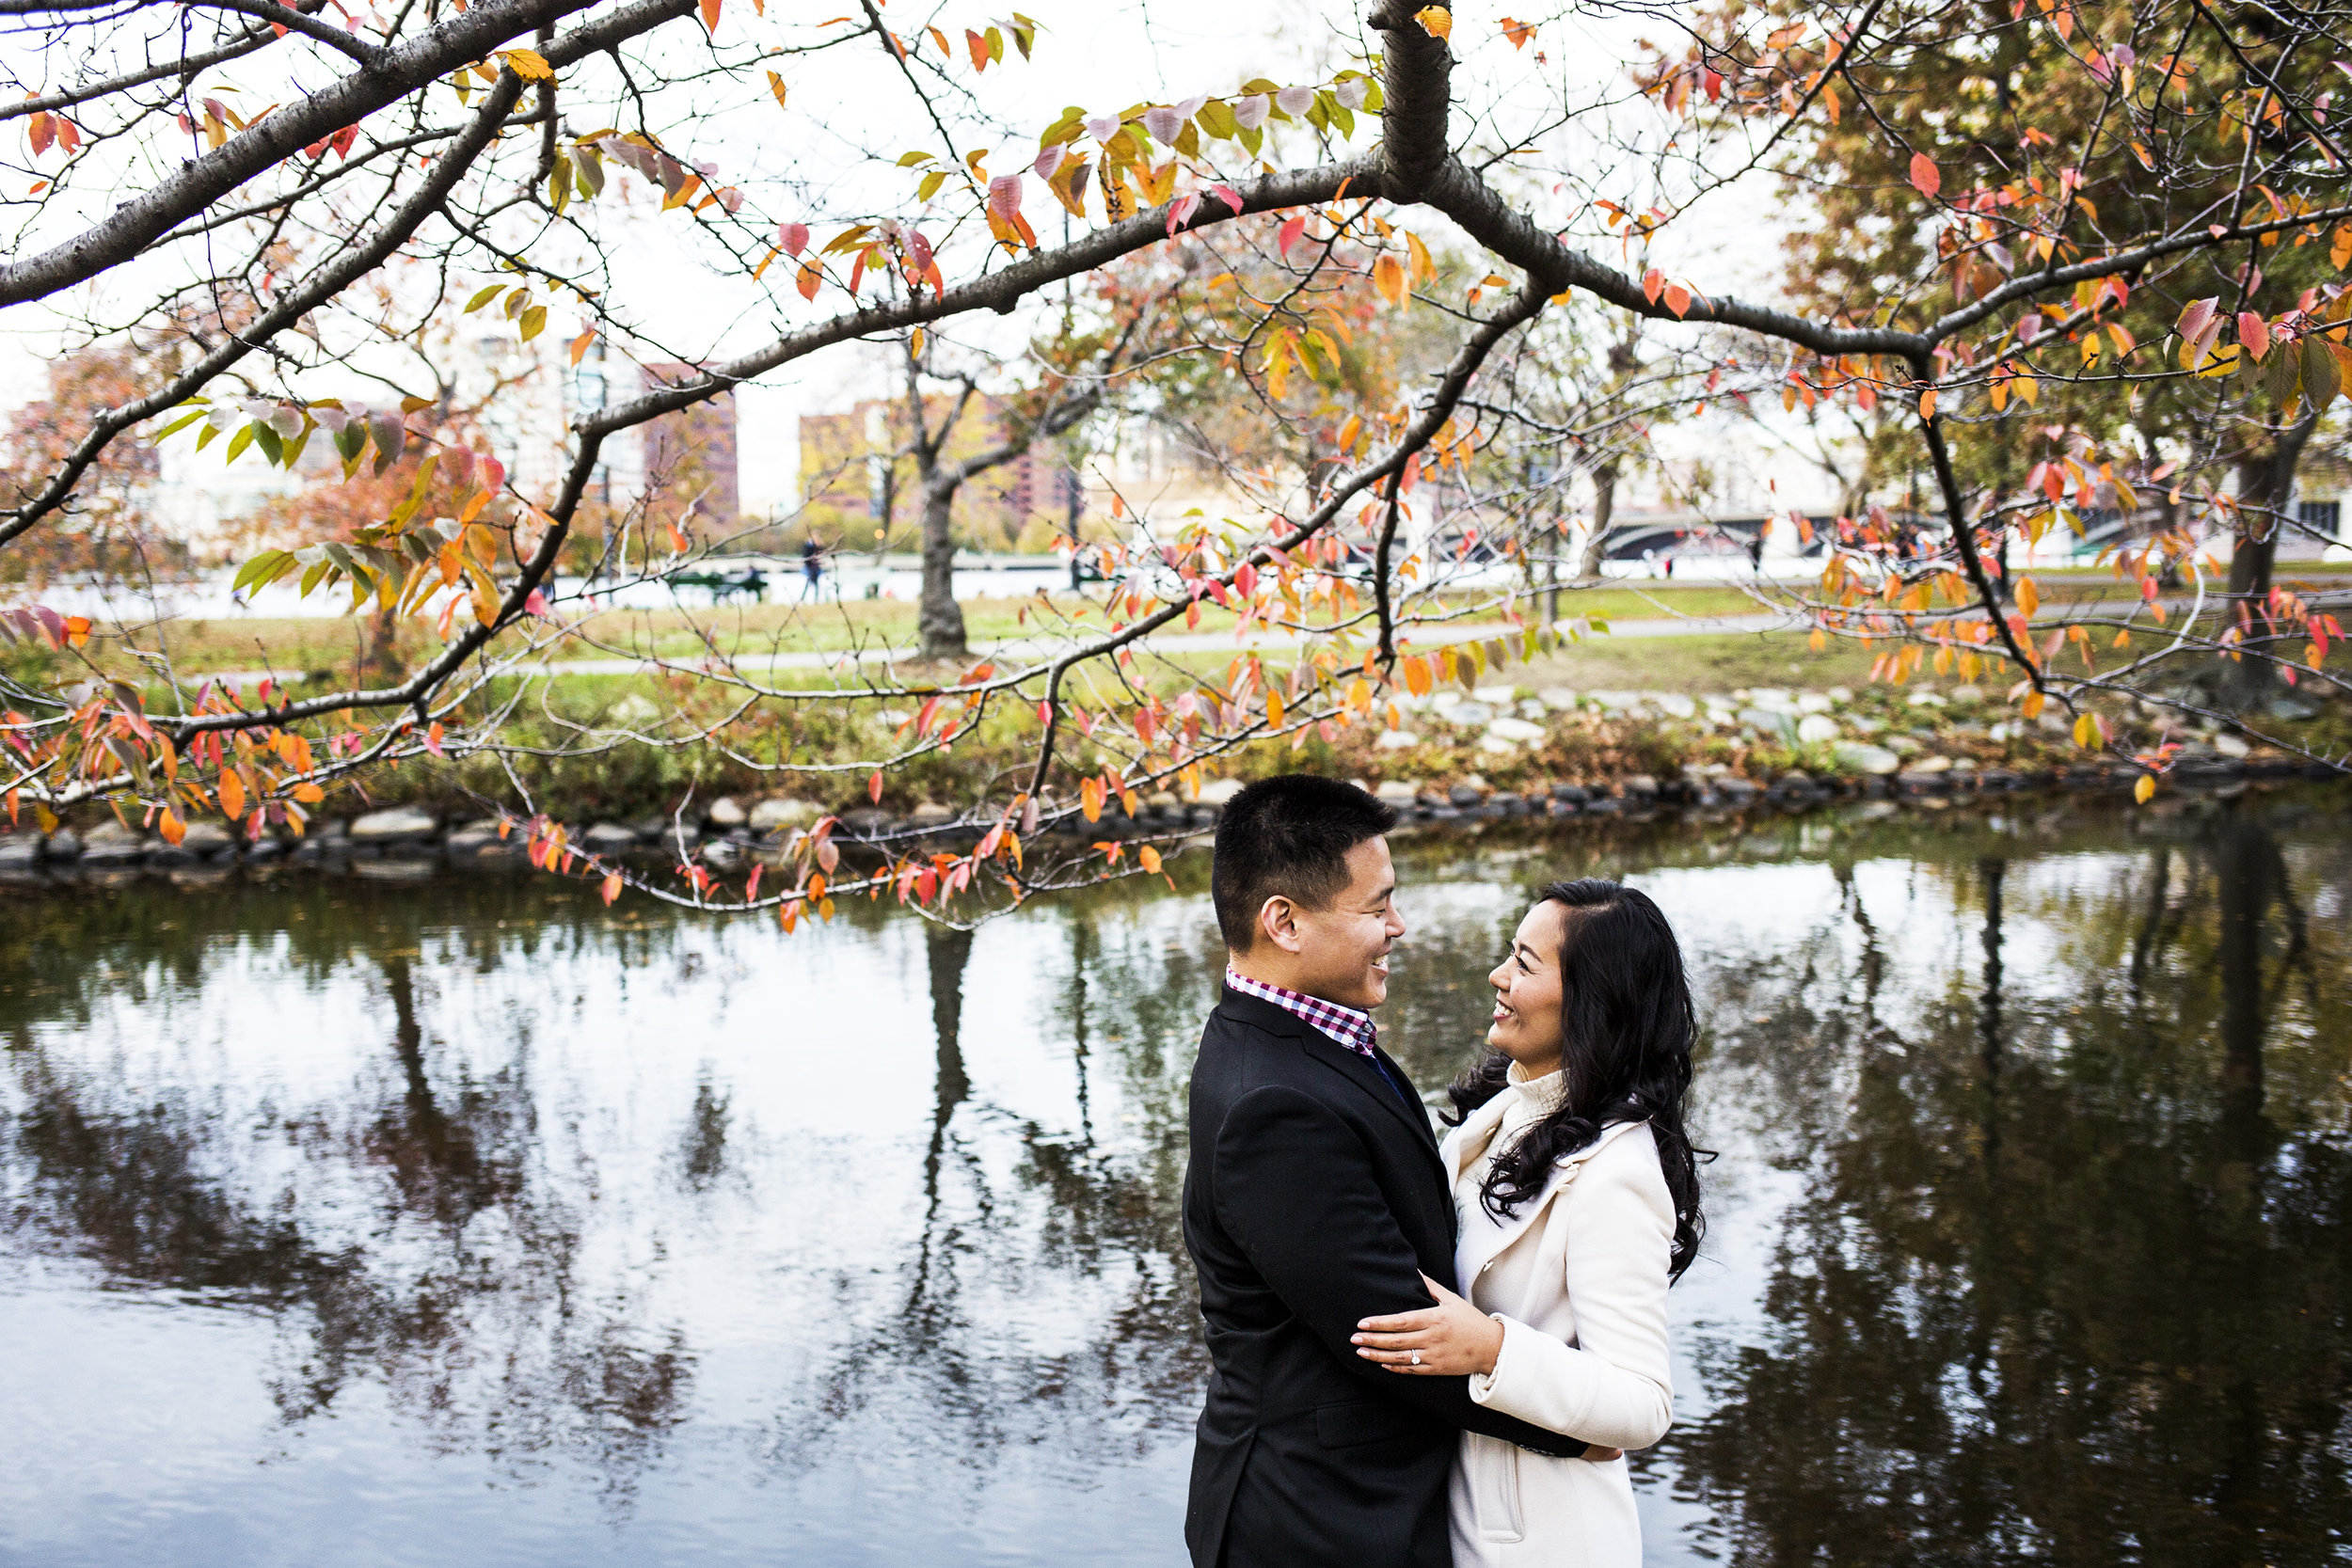 Xixi&ChanuEngagement44.JPG